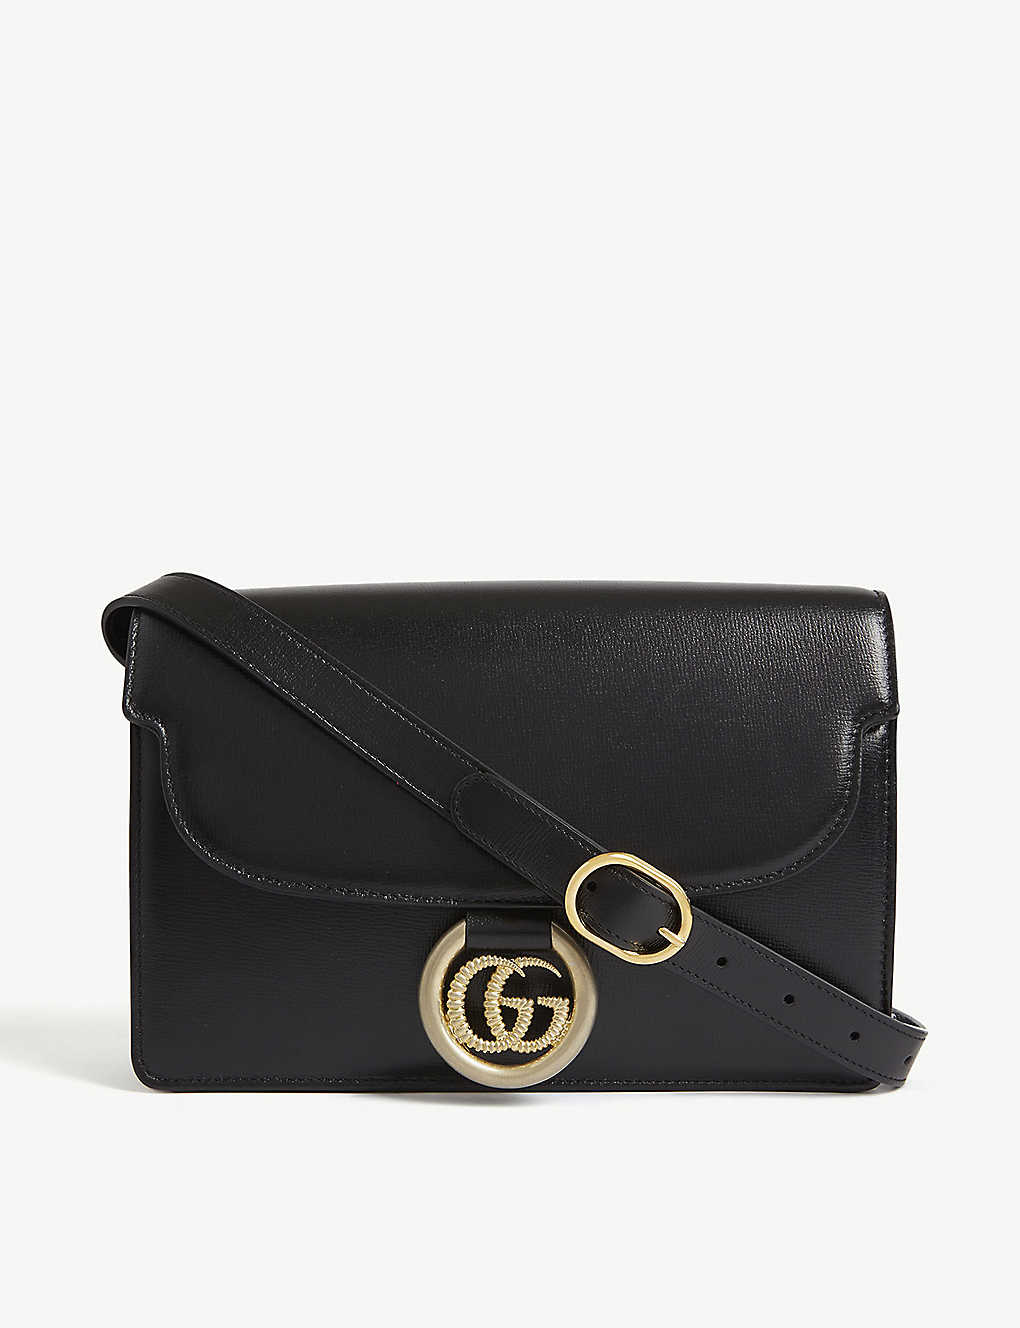 GUCCI: GG logo leather crossbody bag